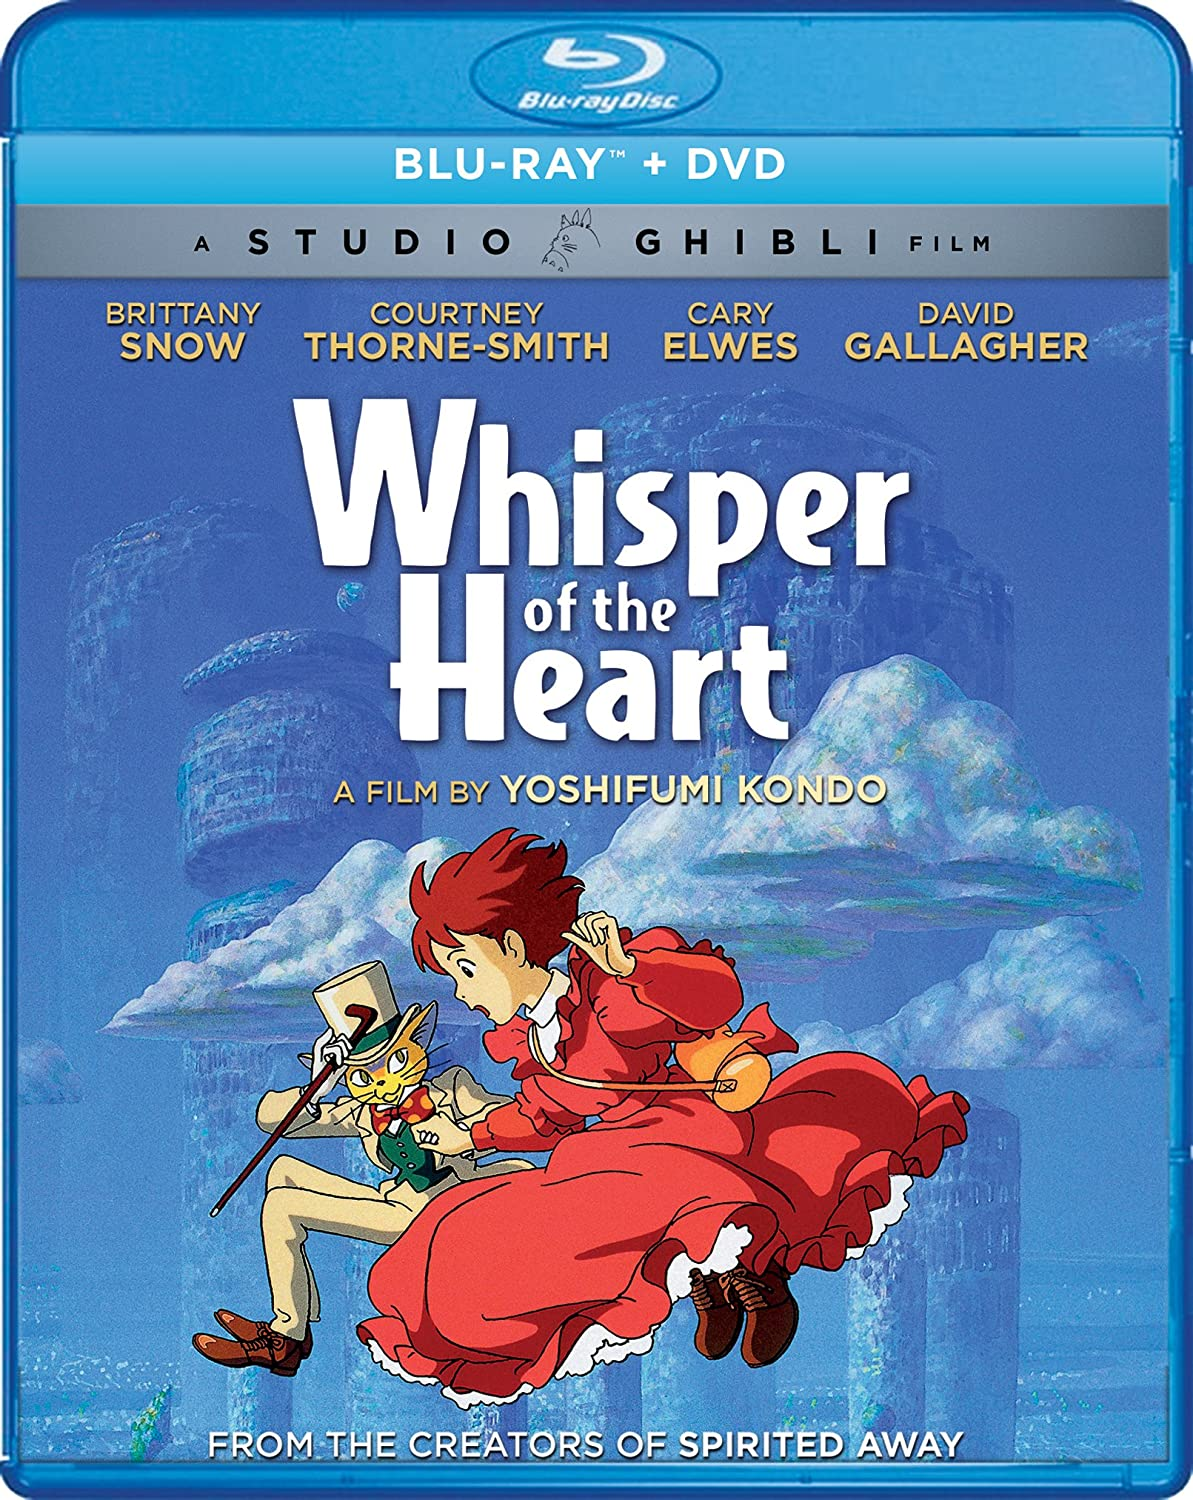 Whisper of the Heart Blu-ray/DVD (Dual Audio)